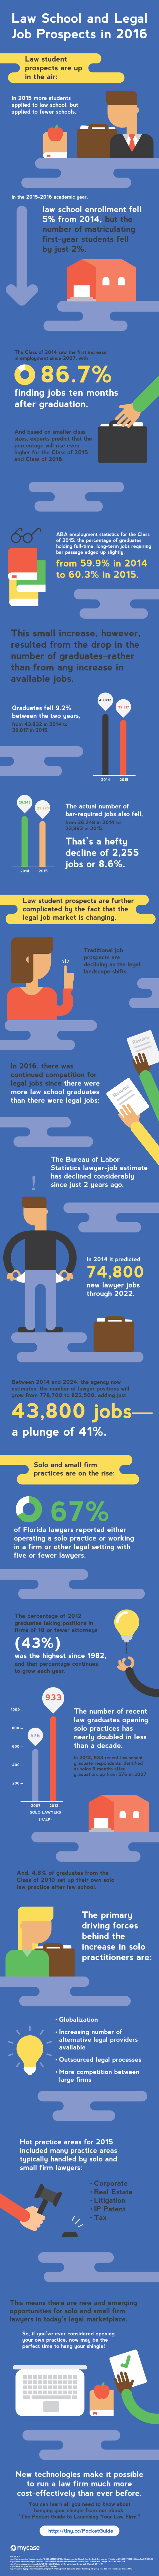 today s tech law school and legal job prospects in 2016 above legal job prospects 5